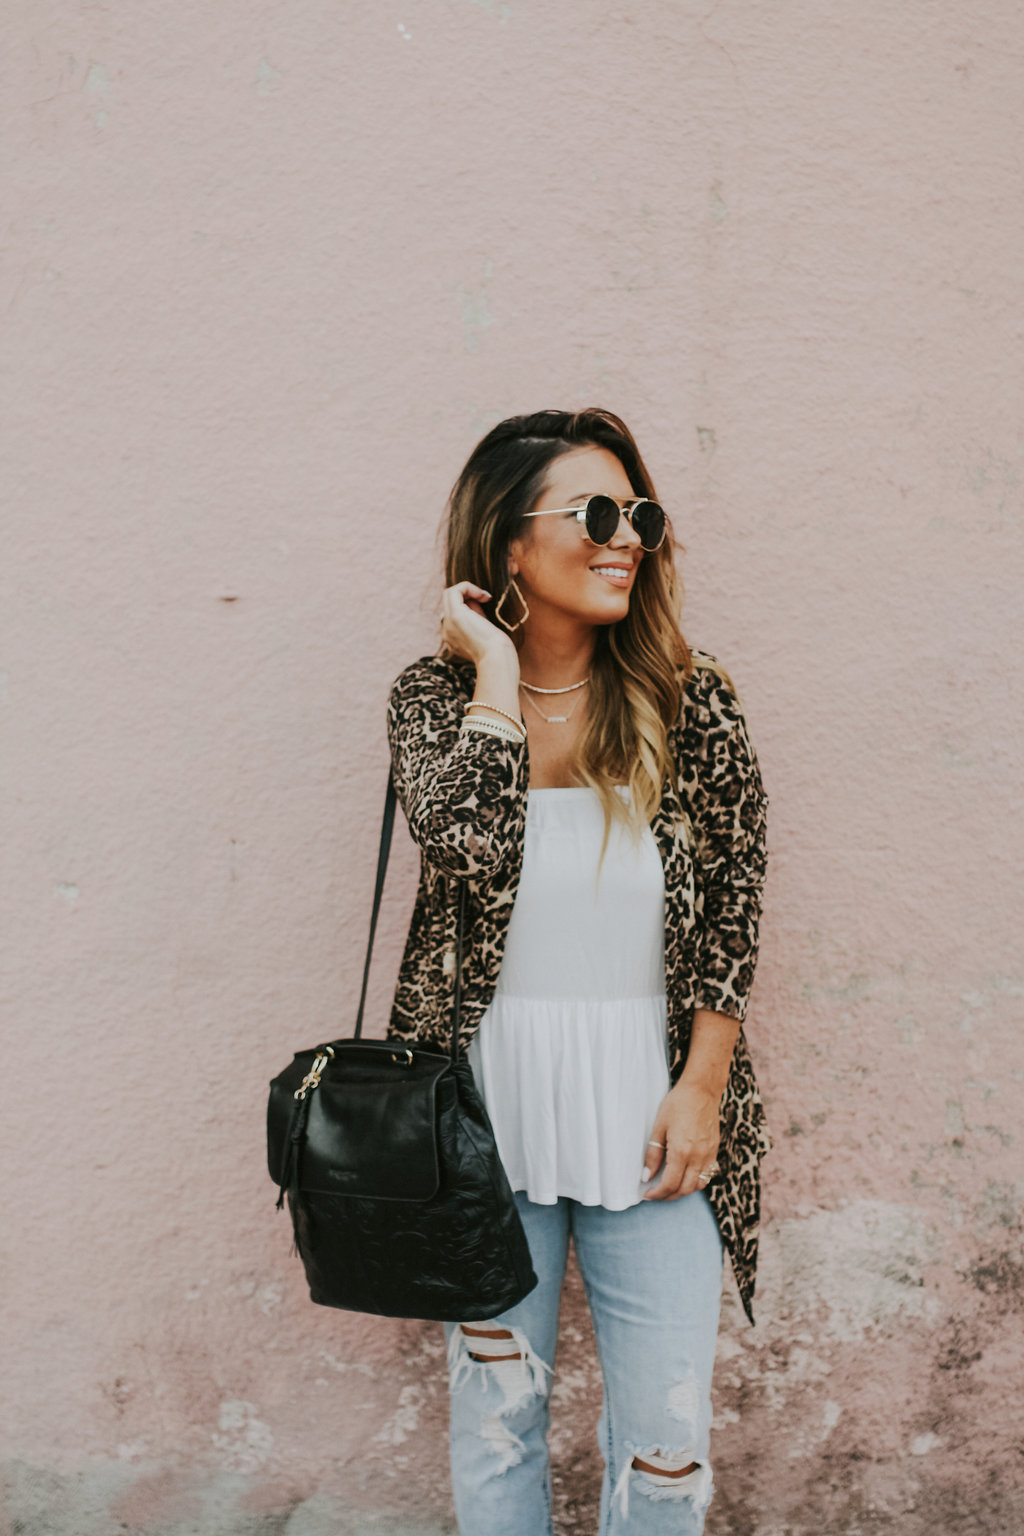 f0a7603a5446 Transition into Fall with this Leopard Cardigan - Dashing Darlin